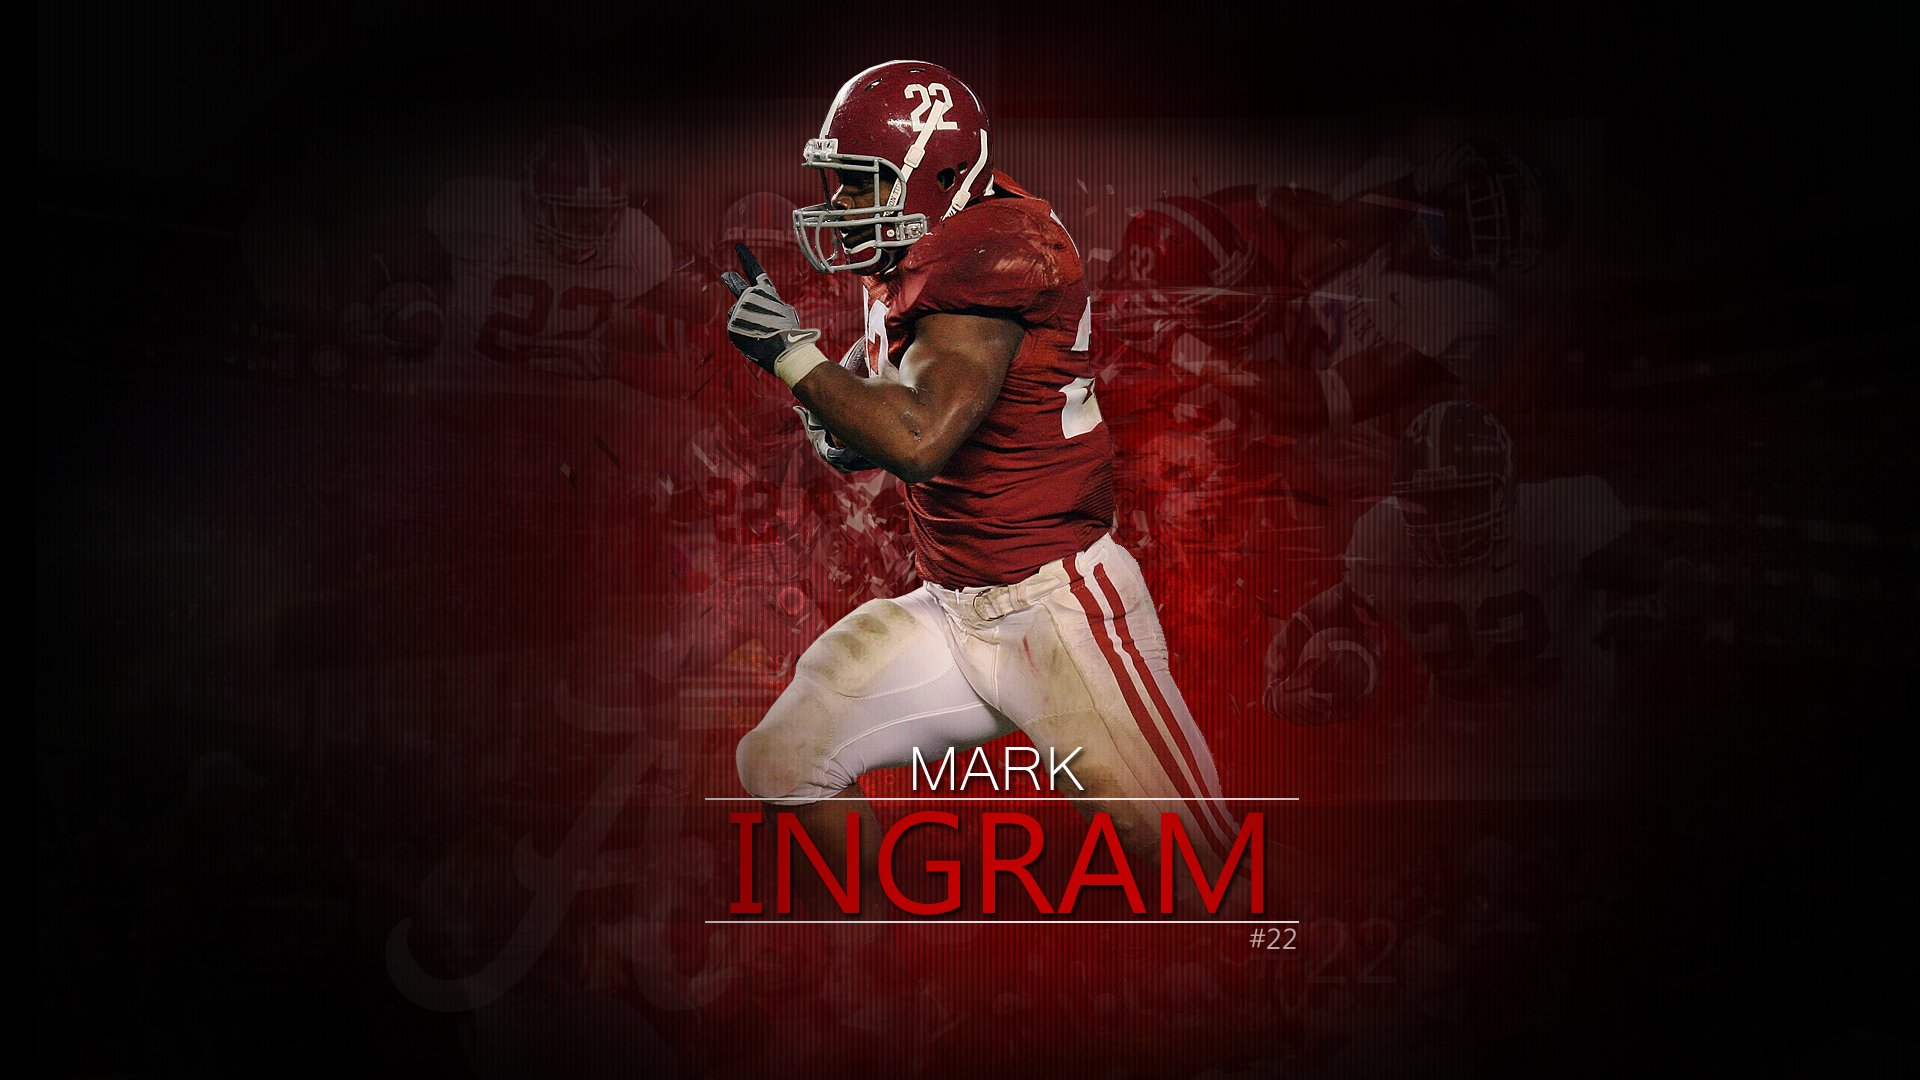 wallpapers desktop football crimson ingram alabamajpg 1920x1080